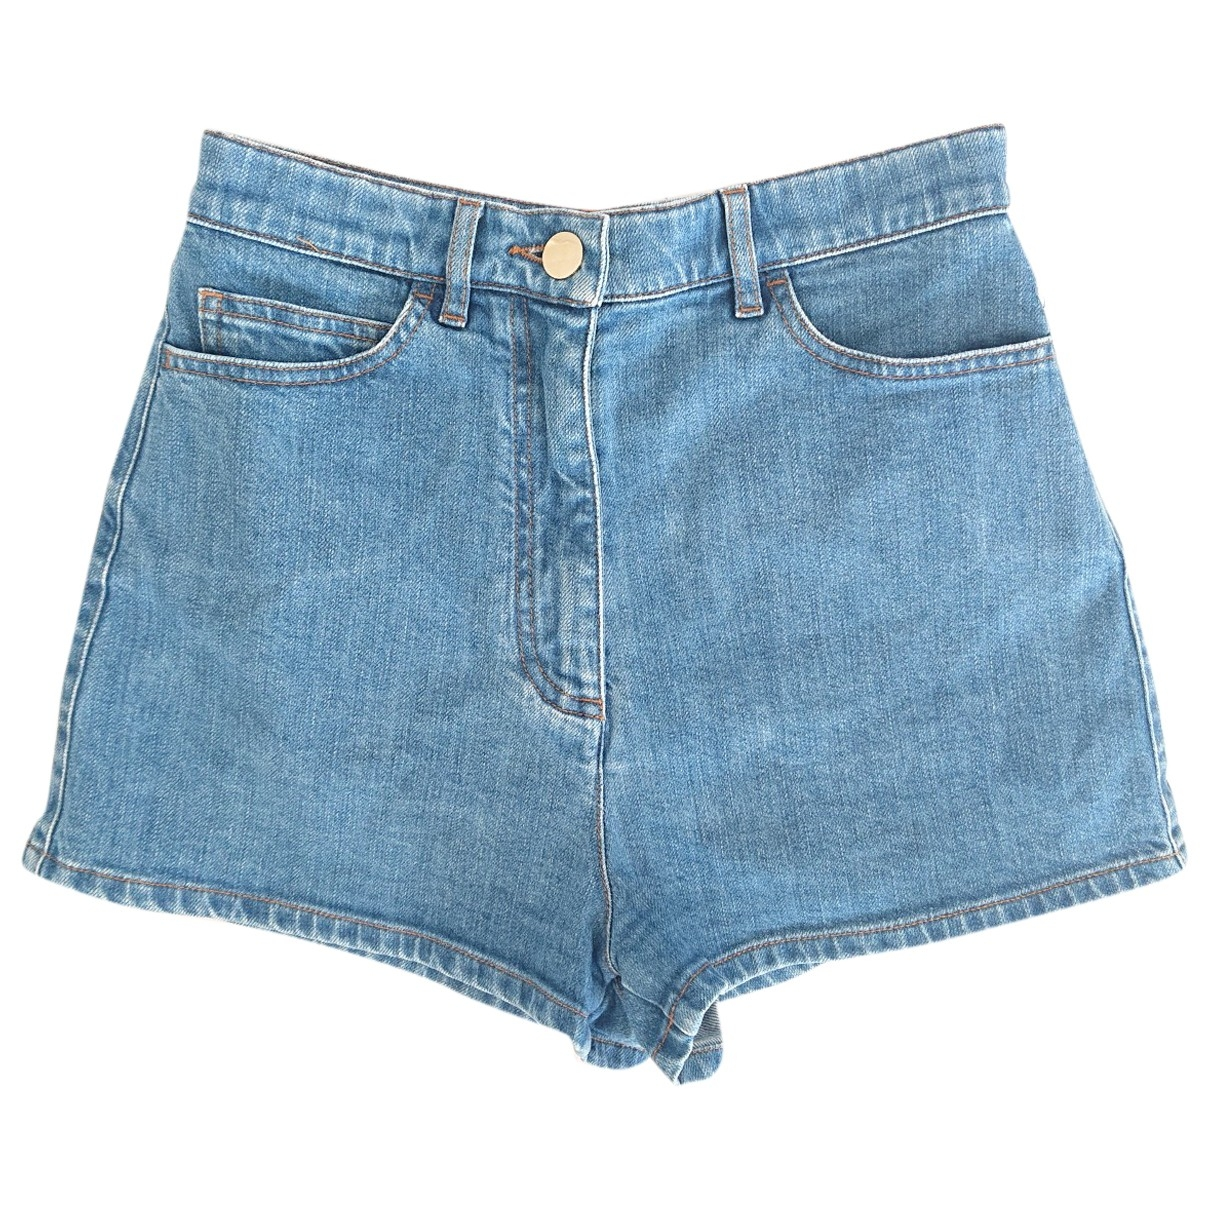 Valentino Garavani \N Shorts in  Blau Denim - Jeans